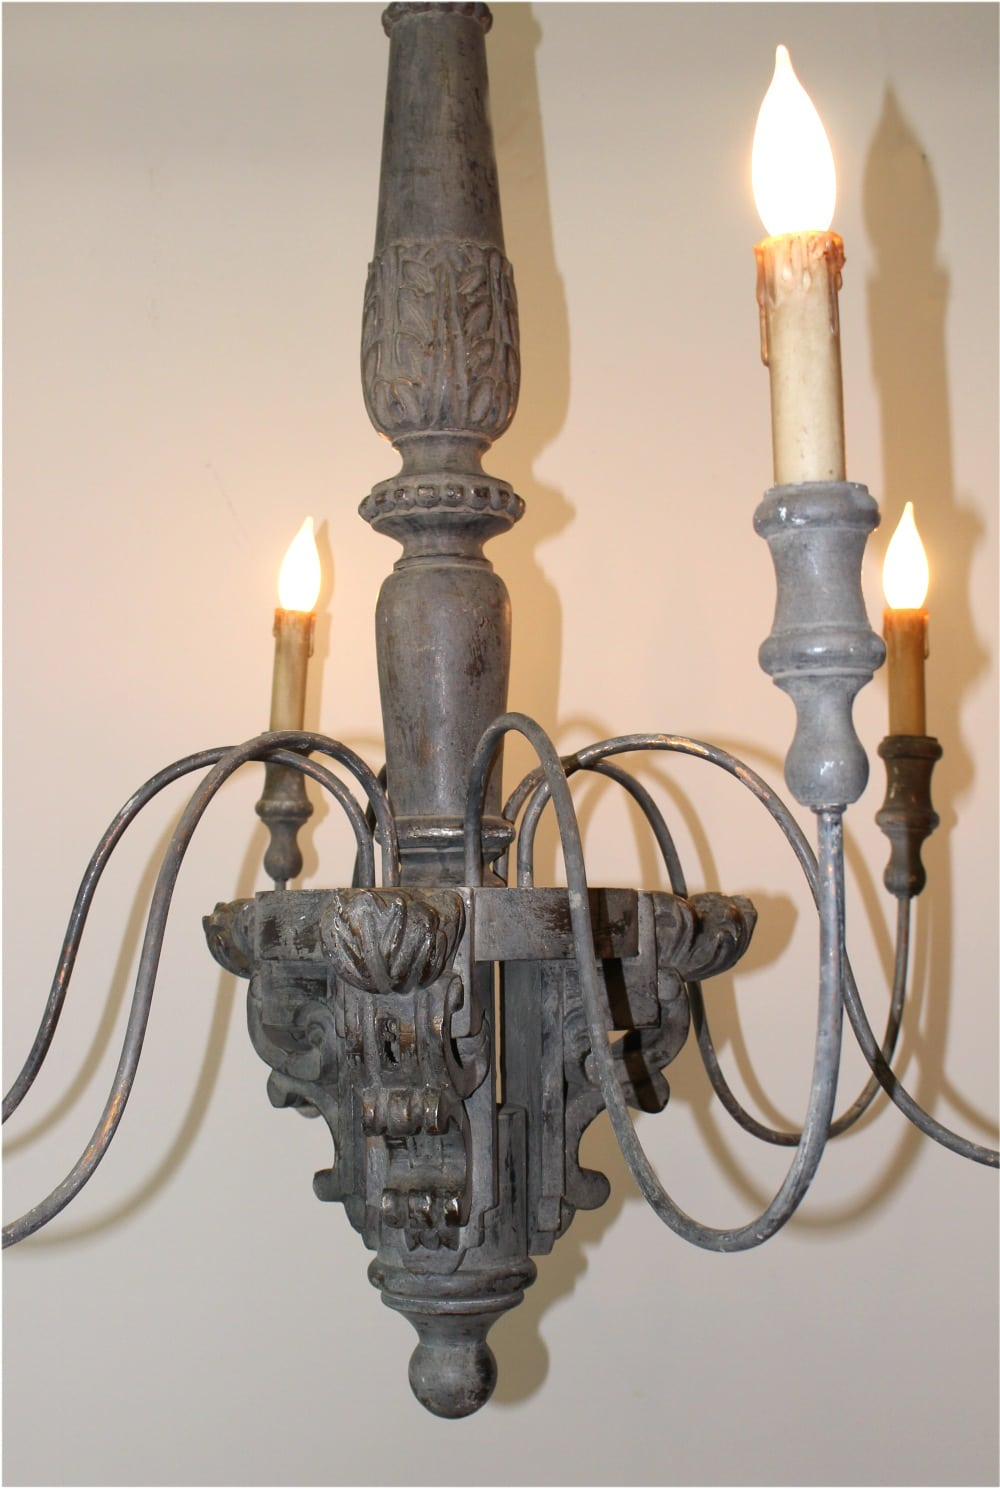 Aged Old Fashioned Wood And Metal Chandelier Light Fixture W 6 Arms Big The Kings Bay